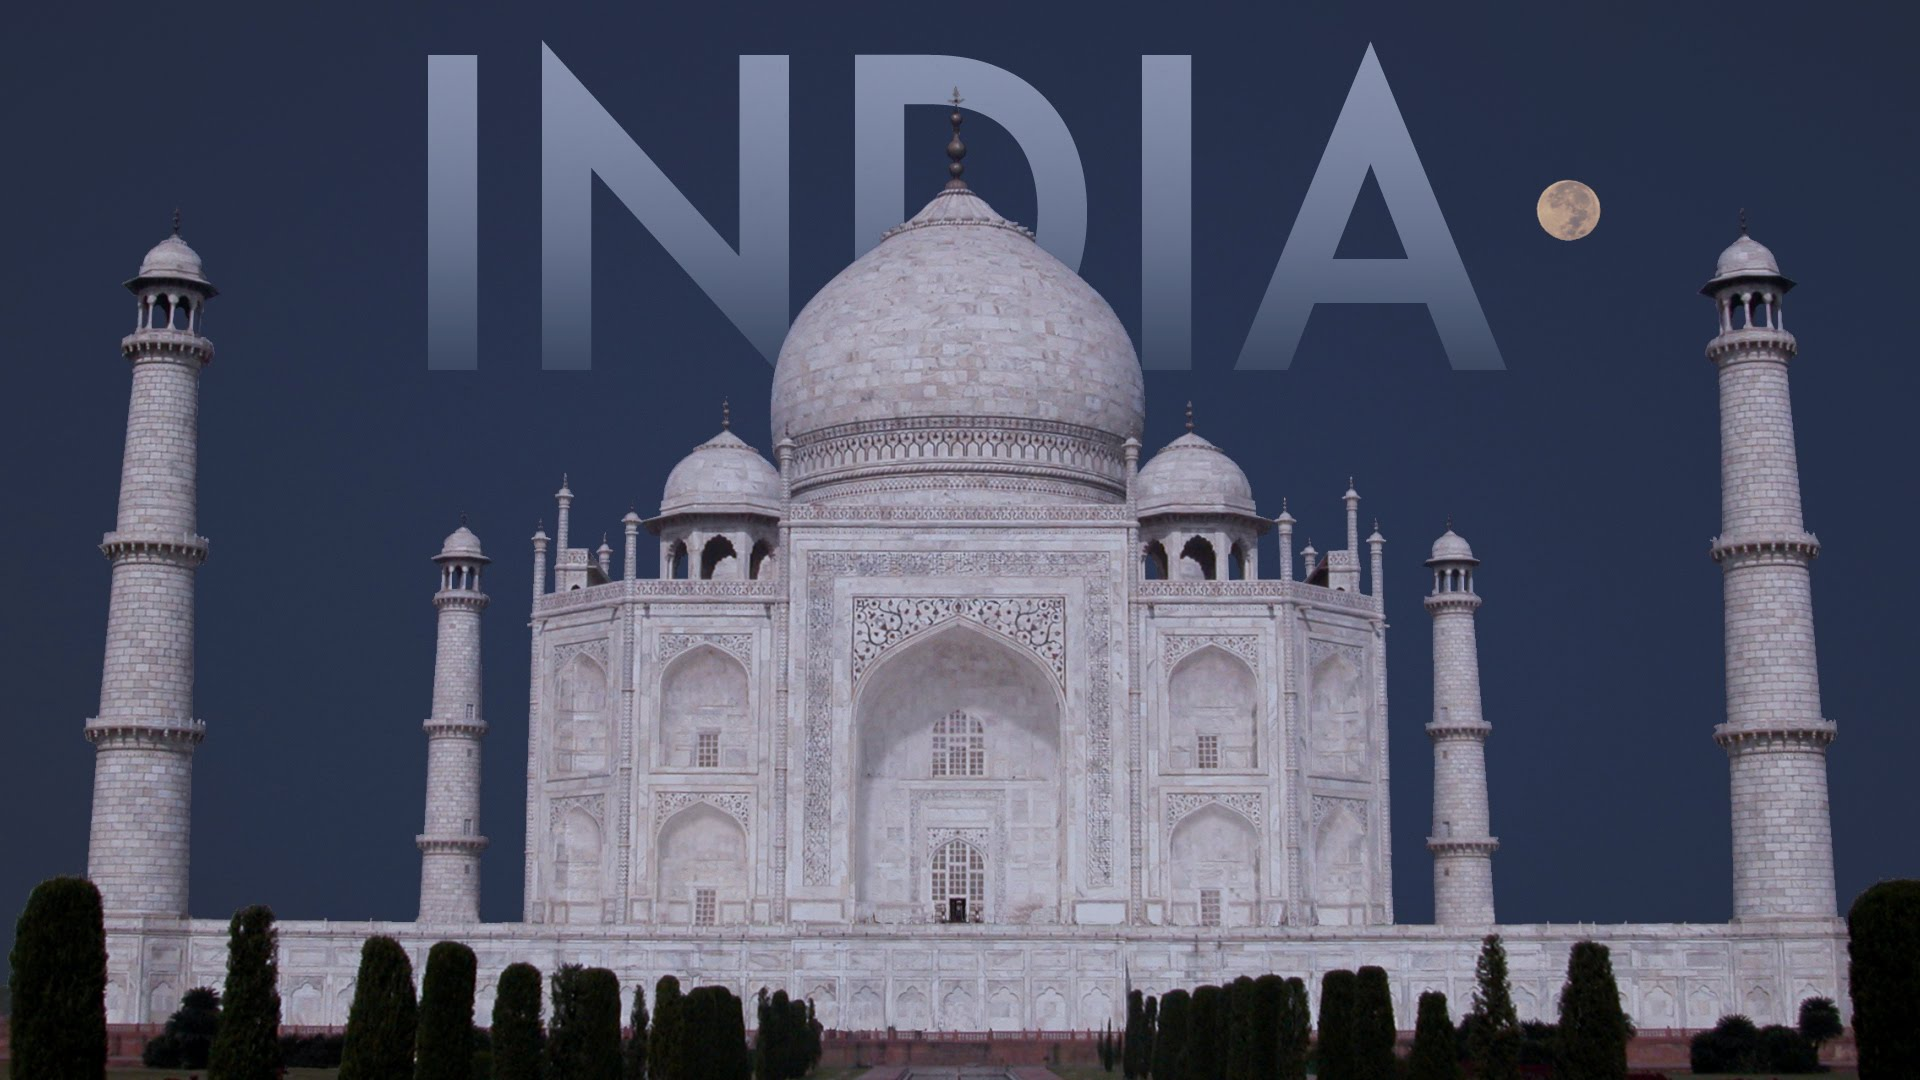 tour of india by this amazing video in 6 minutes only